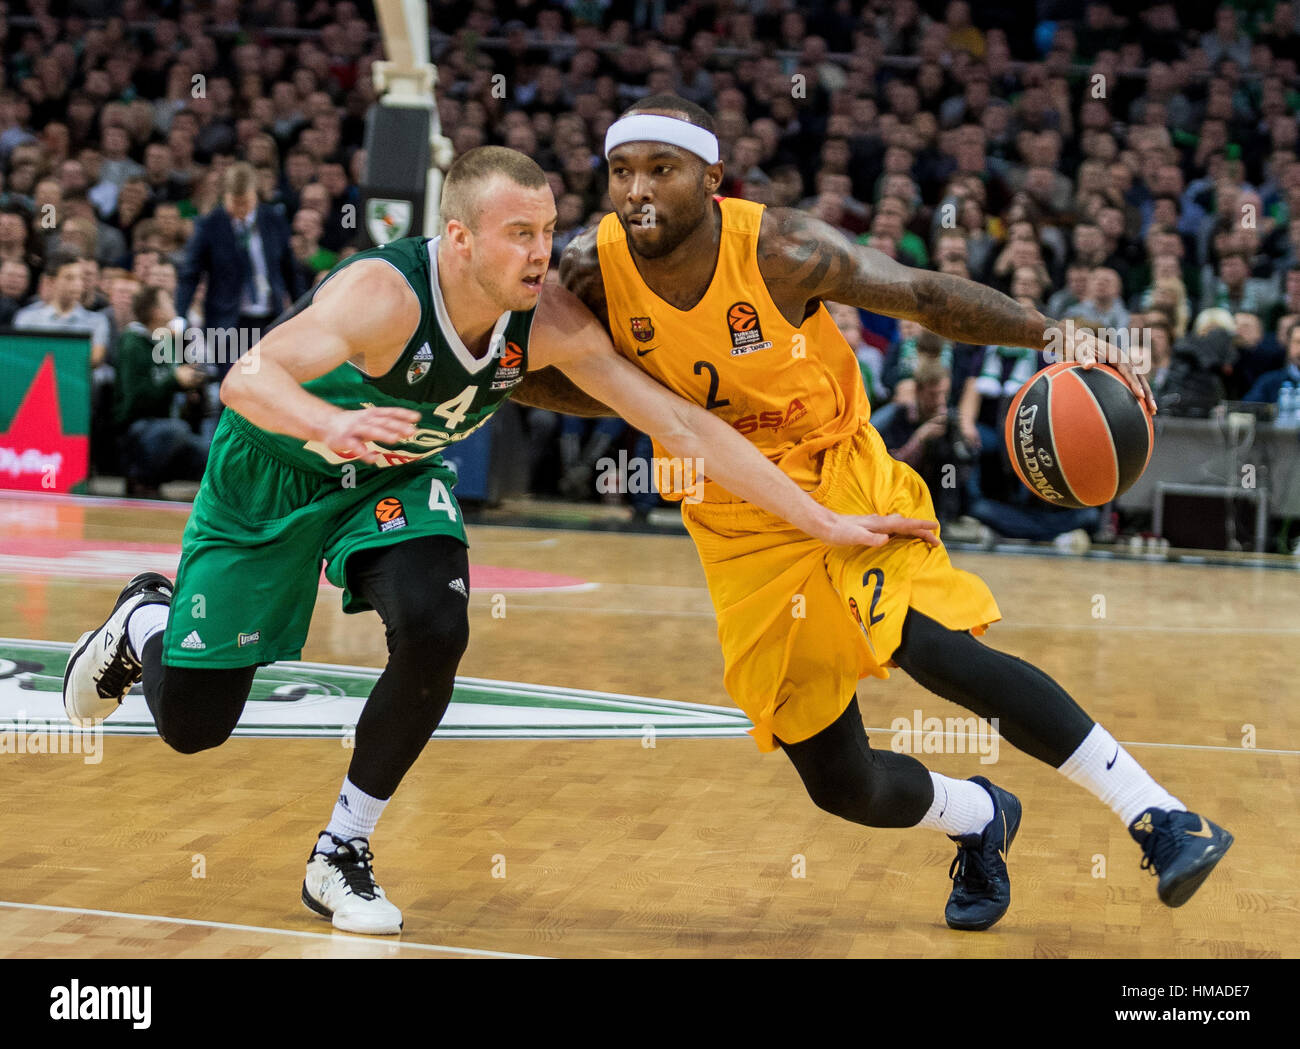 Vilnius, Lithuania. 2nd Feb, 2017. Tyrese Rice (R) from FC Barcelona Lassa of Spain breaks through during a Regular - Stock Image